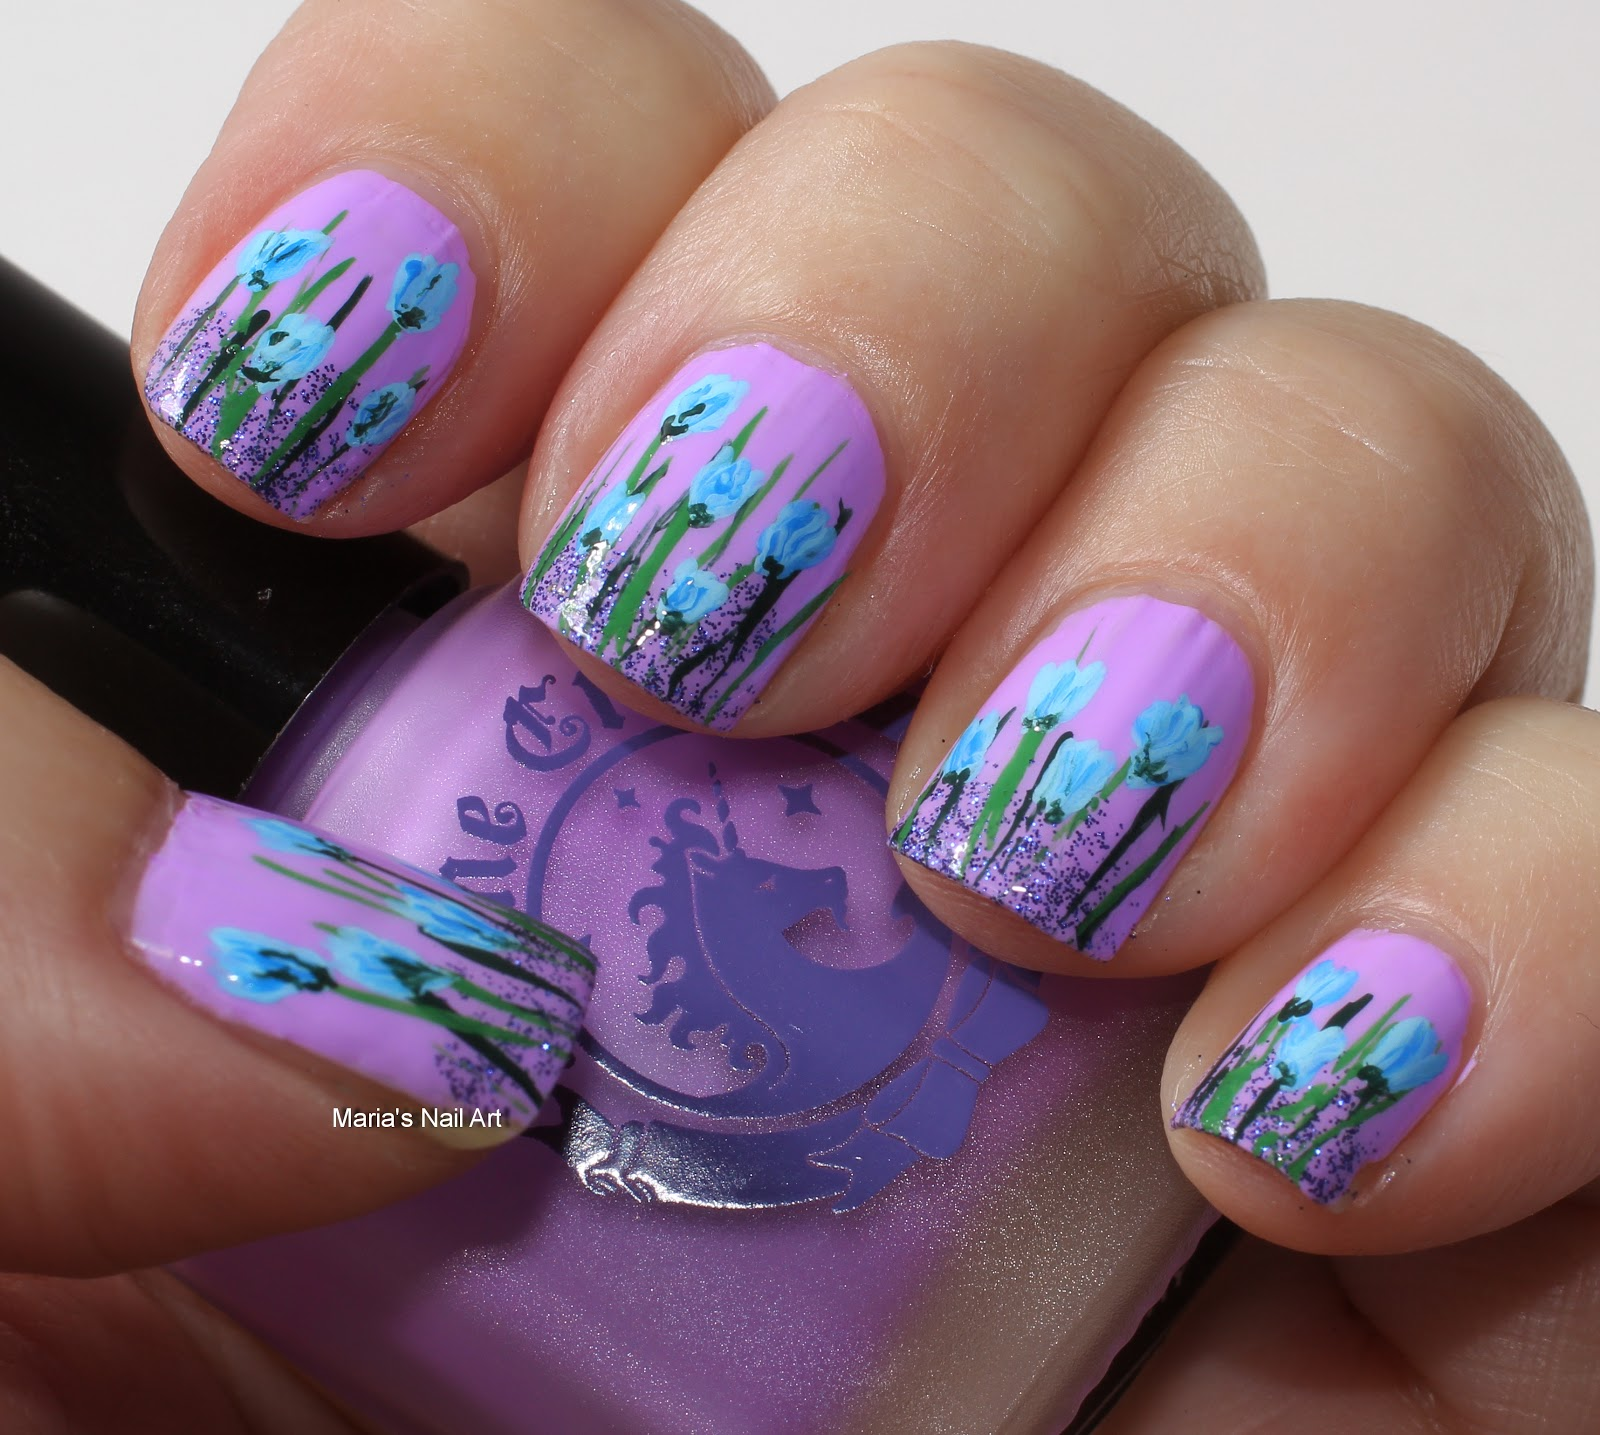 Nail Art Blue Floral: Marias Nail Art And Polish Blog: Blue Flowers In The